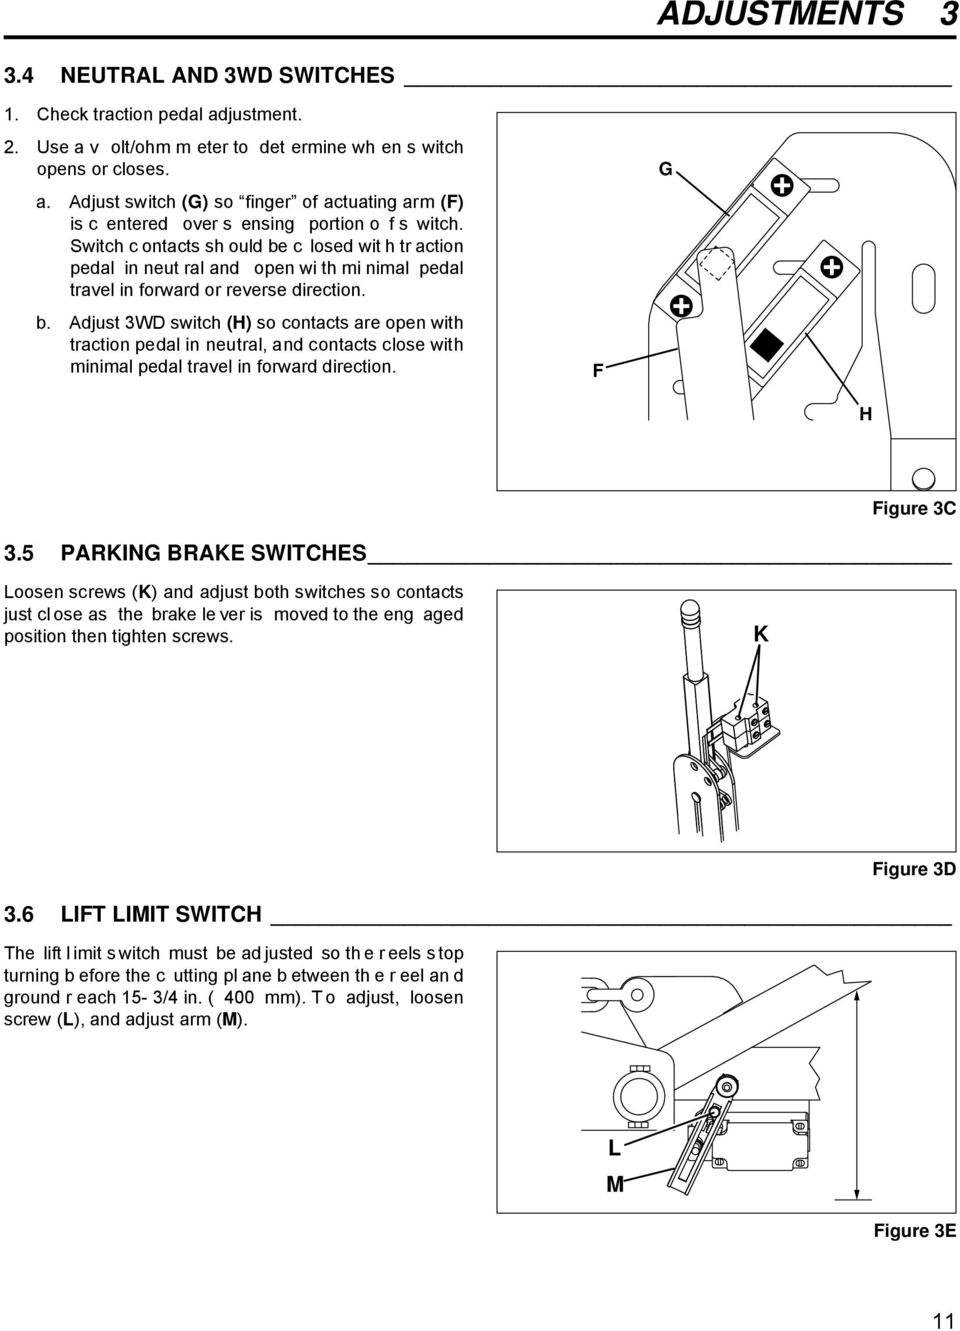 F G H Figure 3C 3.5 PARKING BRAKE SWITCHES Loosen screws (K) and adjust both switches so contacts just cl ose as the brake le ver is moved to the eng aged position then tighten screws. K Figure 3D 3.